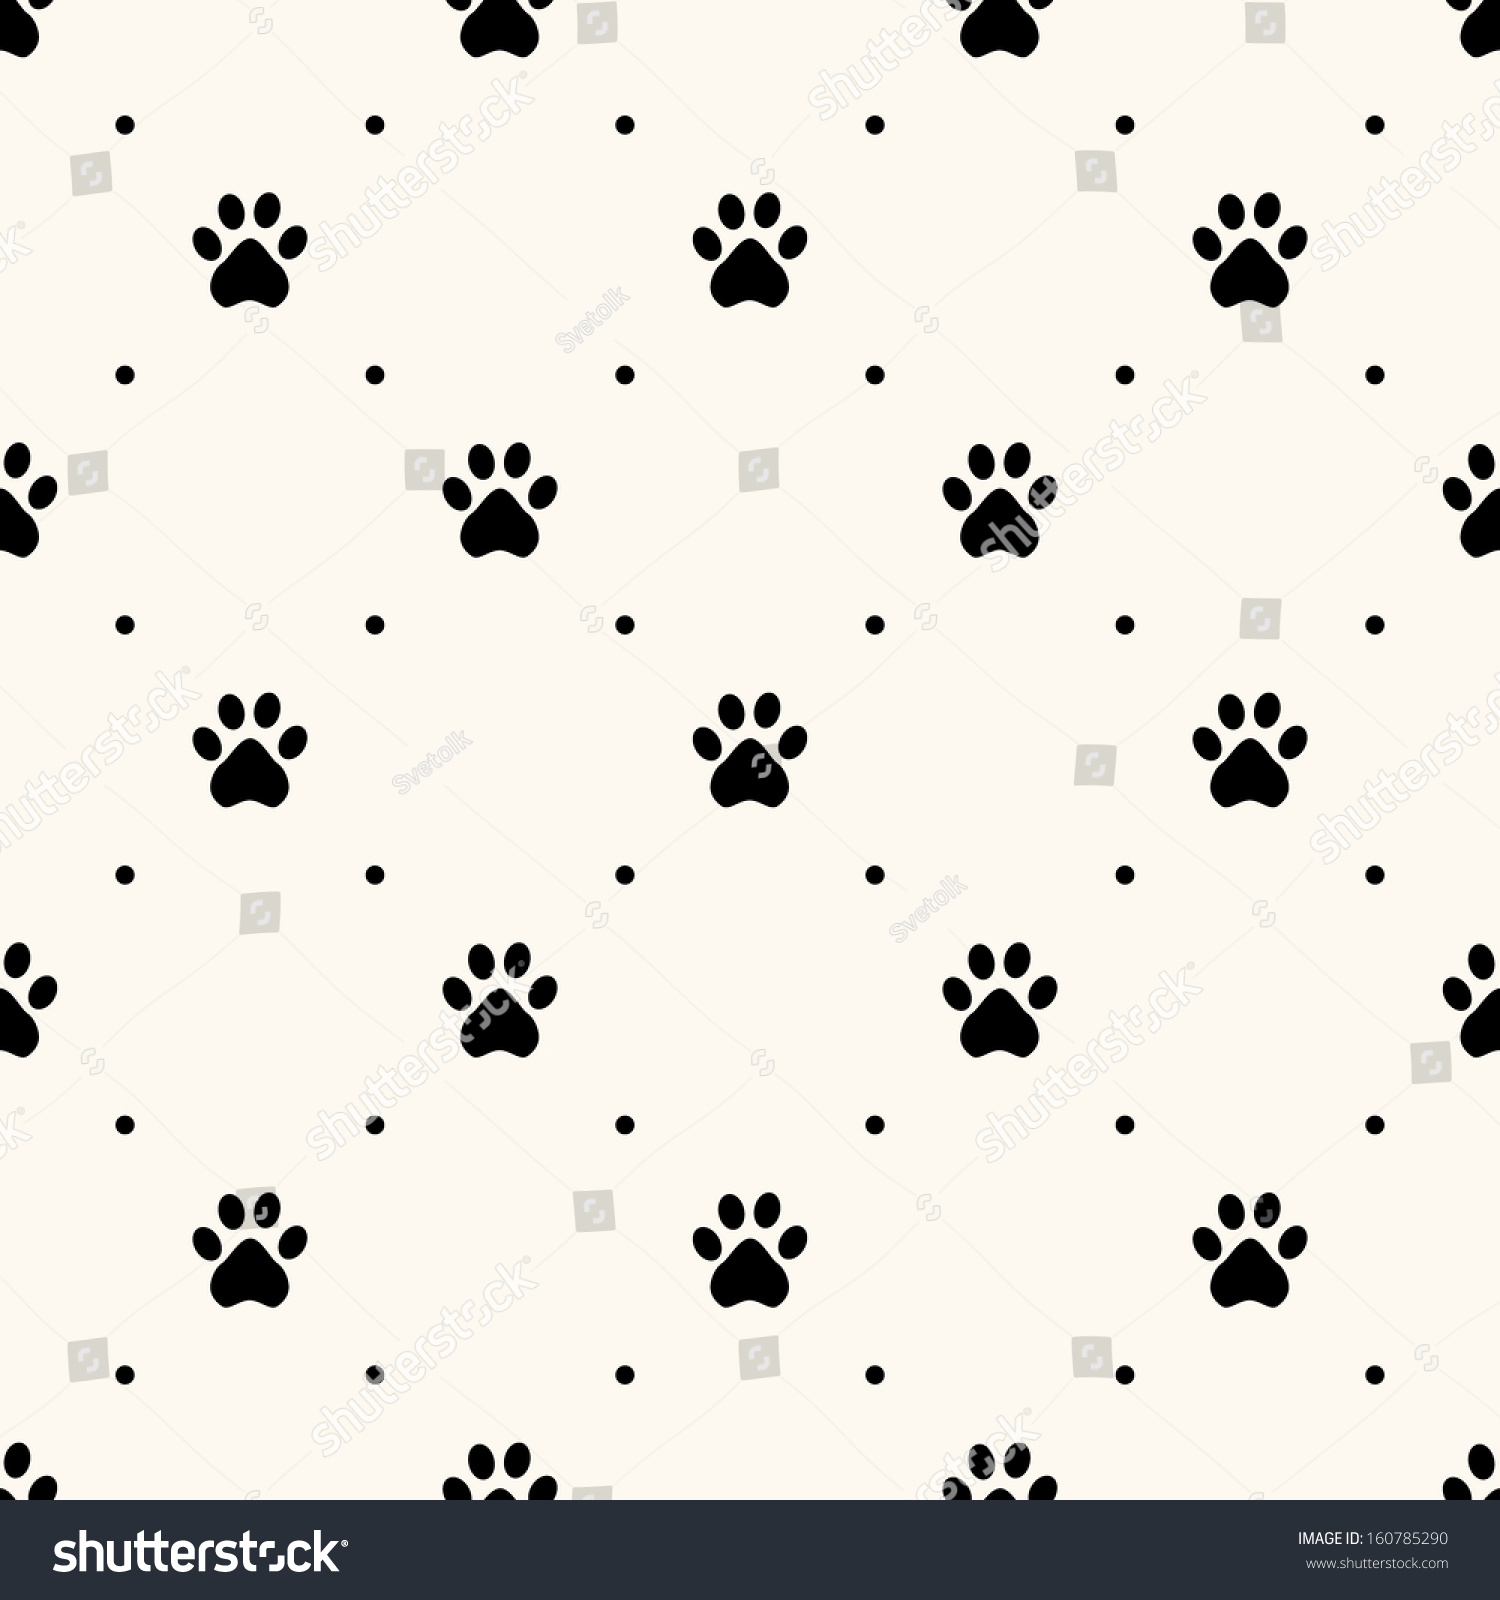 Seamless Animal Pattern Of Paw Footprint And Polka Dot Can Be Used For Wallpaper